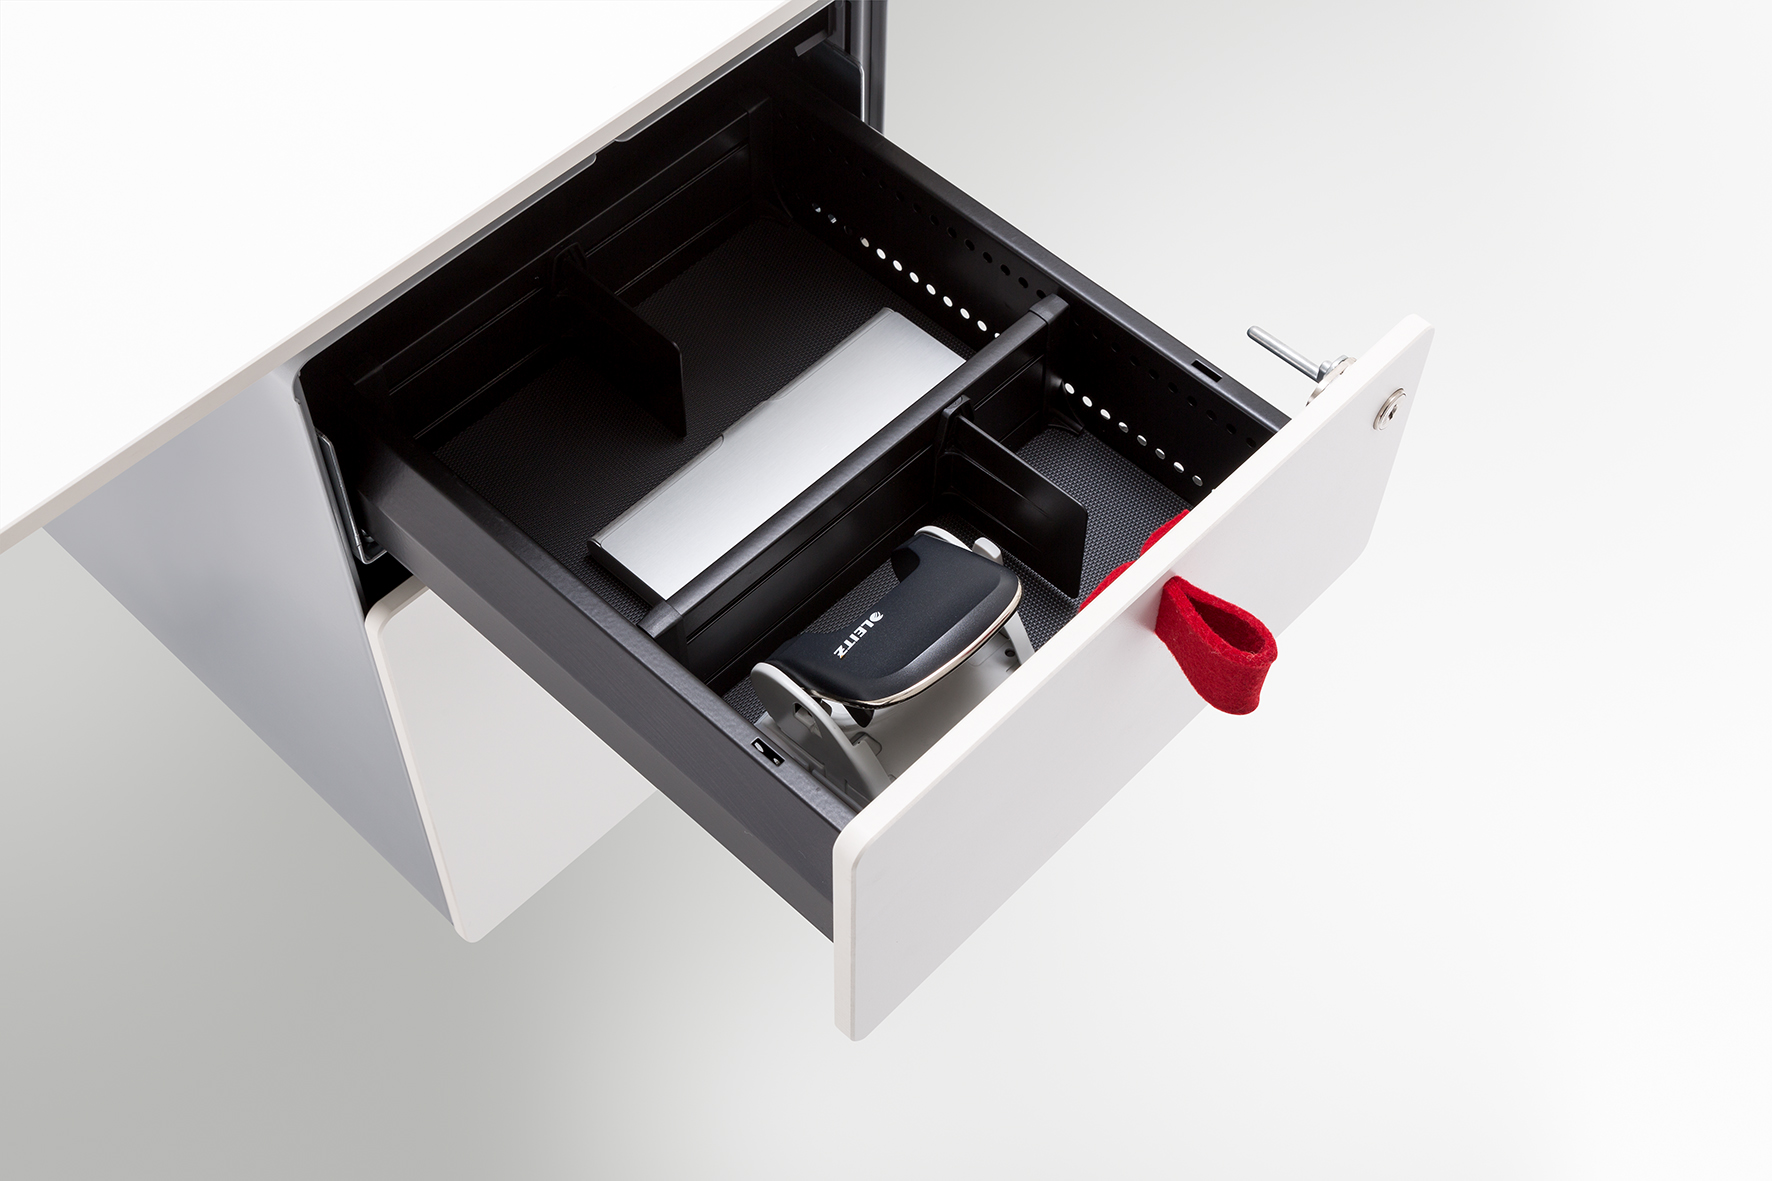 Drawer systems made easy, with original accessories for the Officys table base system from Häfele.